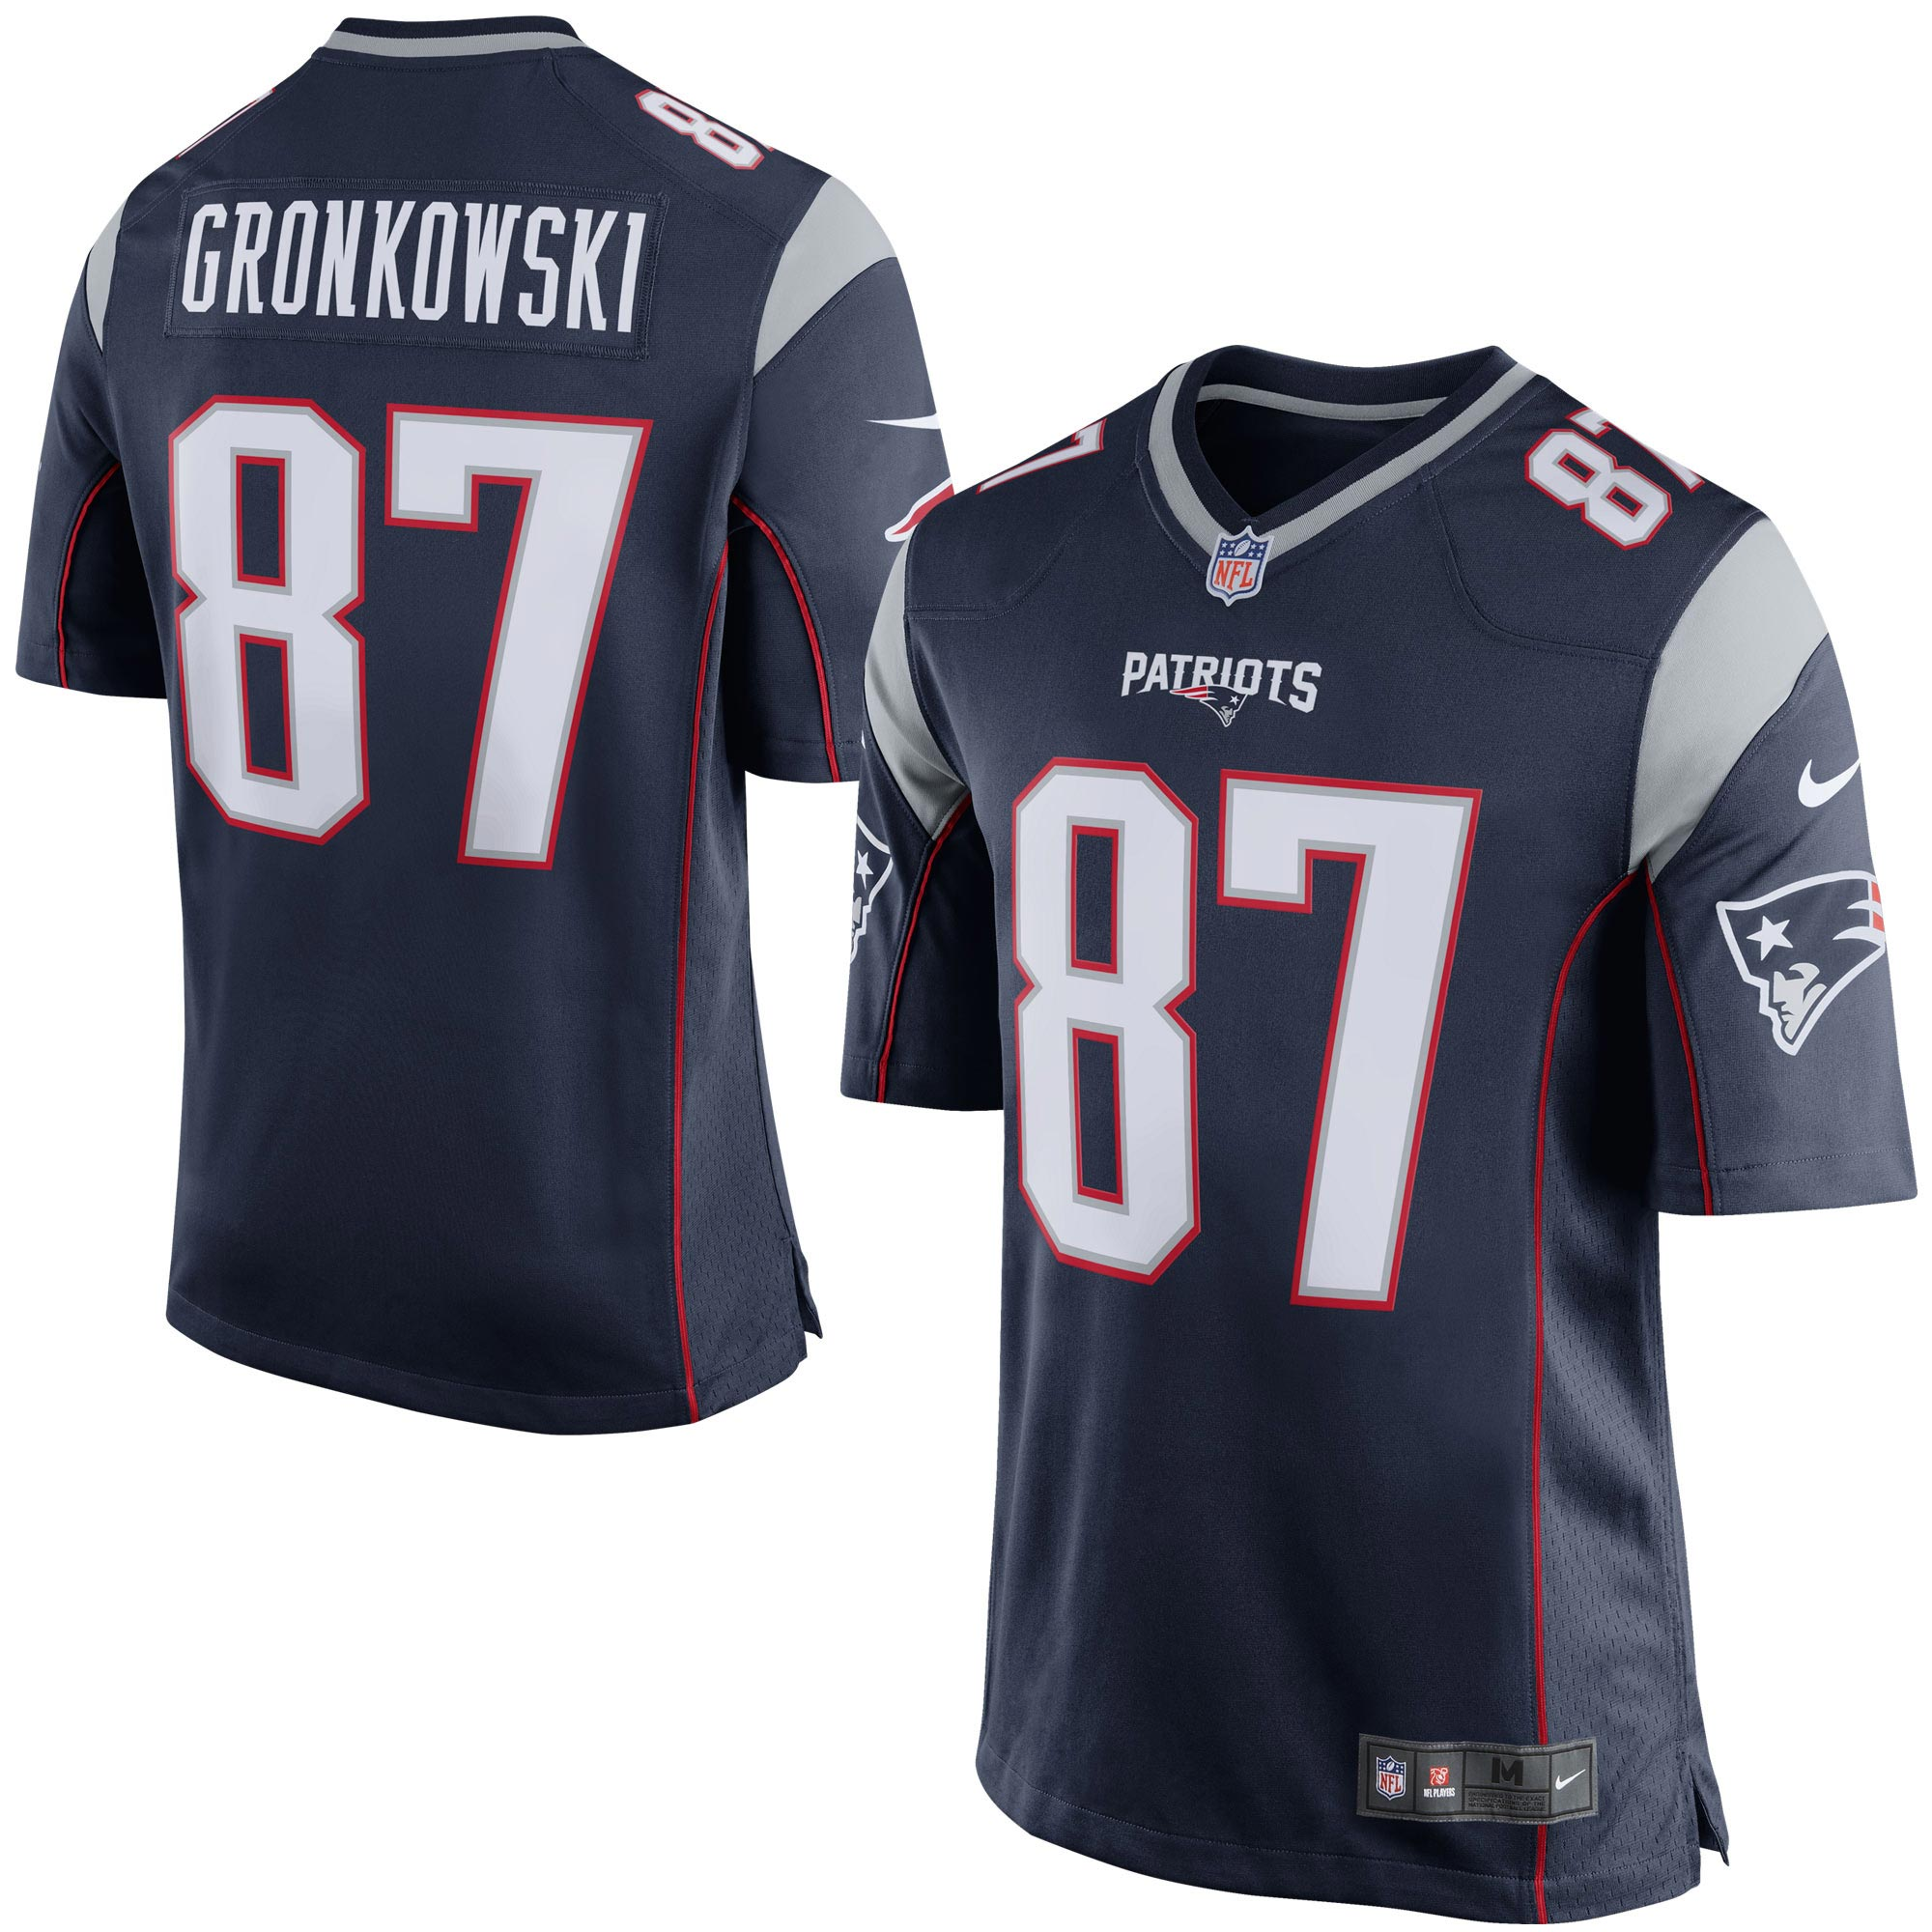 New England Patriots Home Game Jersey - Rob Gronkowski